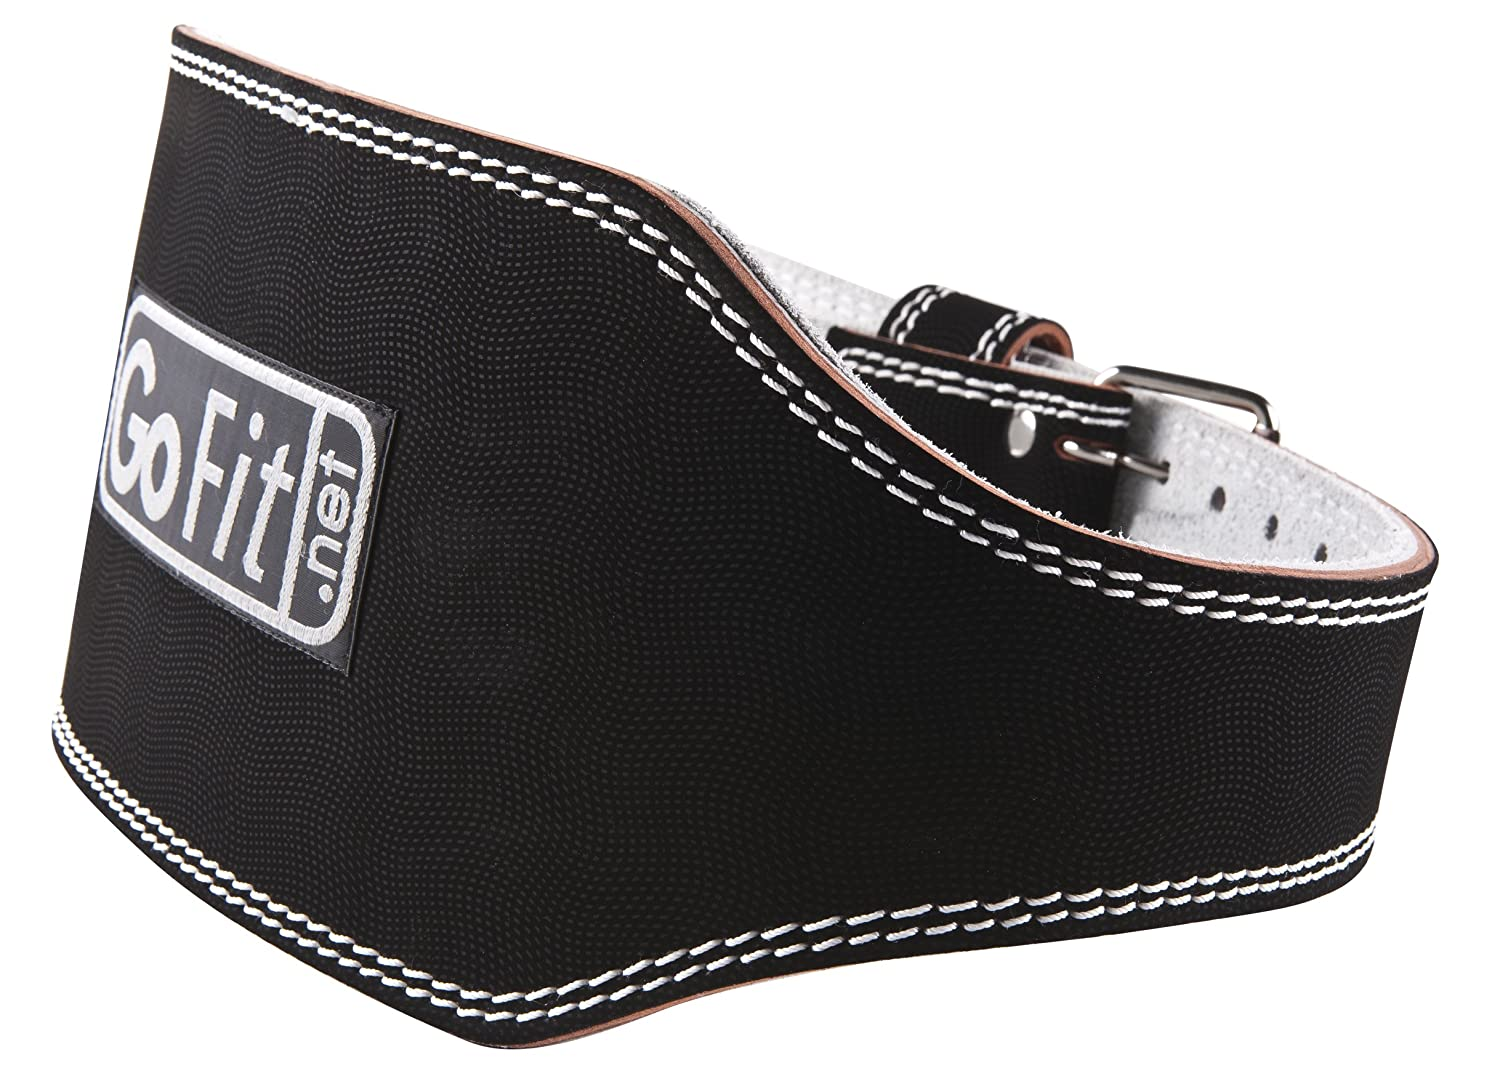 """Weightlifting Accessory GoFit 6/"""" Leather Lifting Belt"""